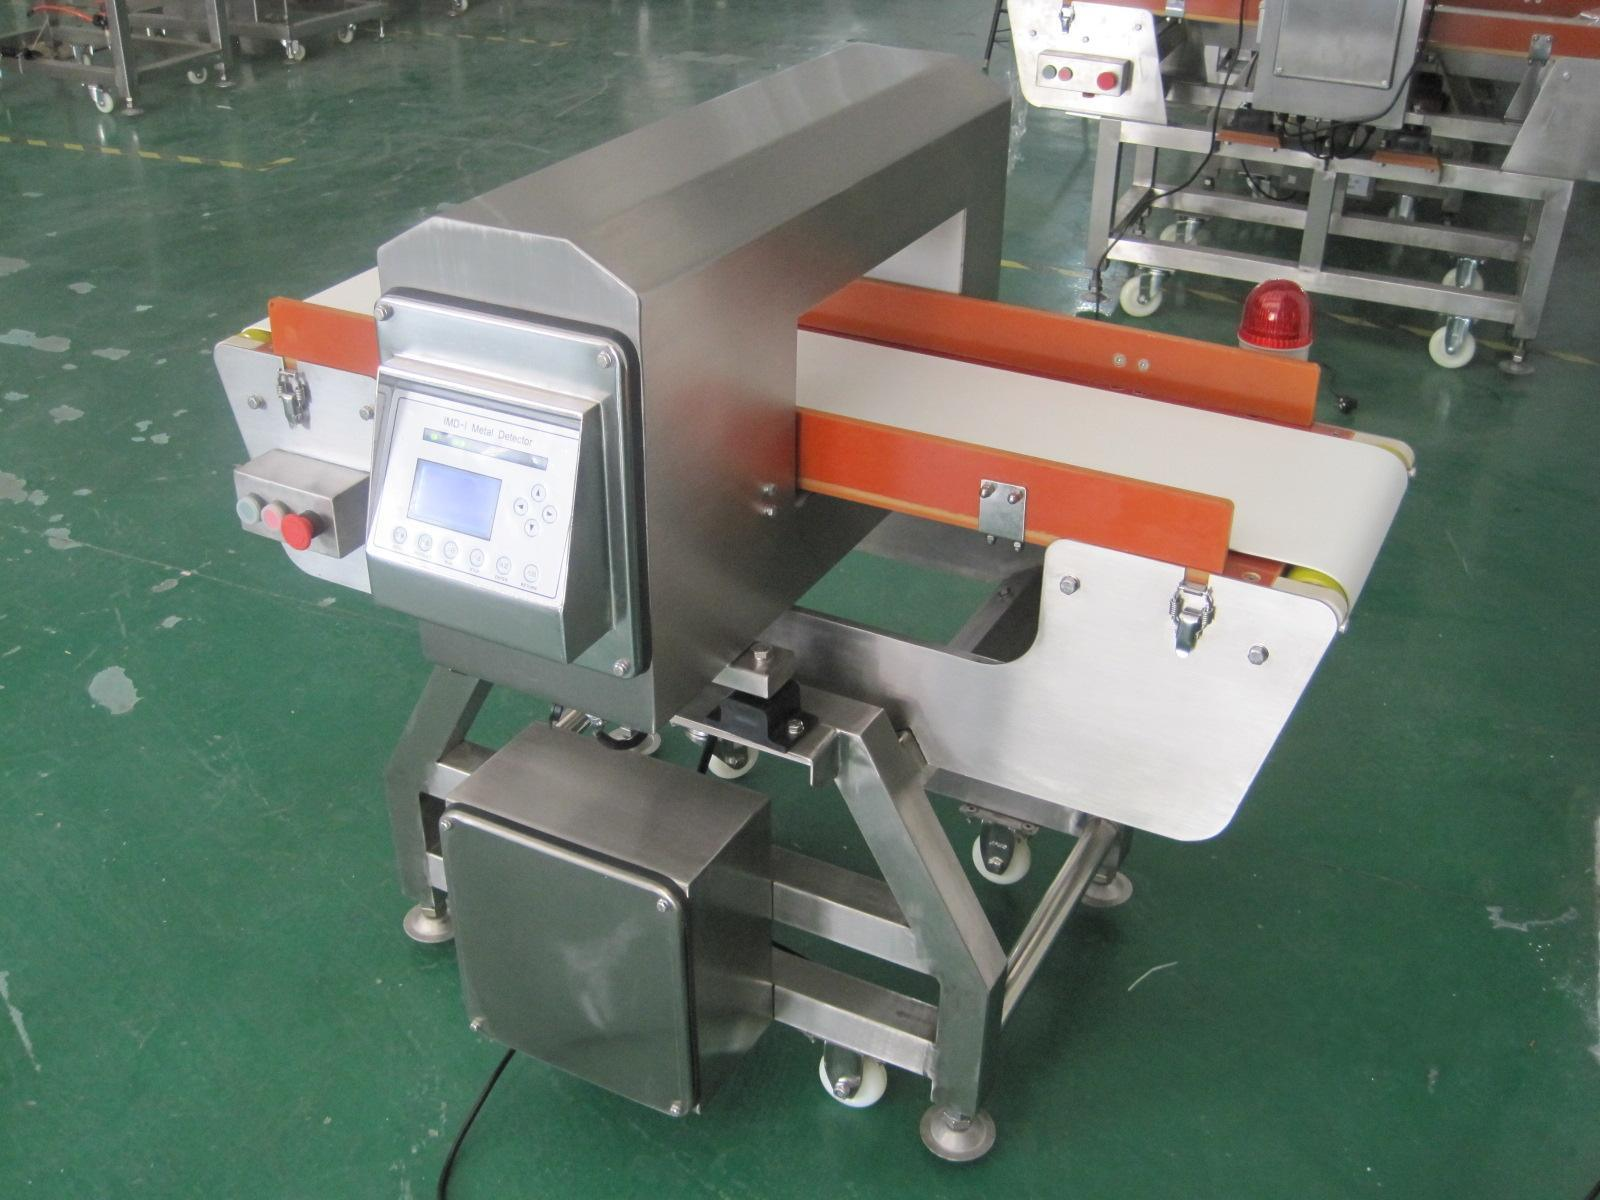 Metal Detector, Detector Metal, Metal Detection Machine, Jl-IMD3012 for Seafood, Meat, Fish, Fruit, Vegetable Inspection